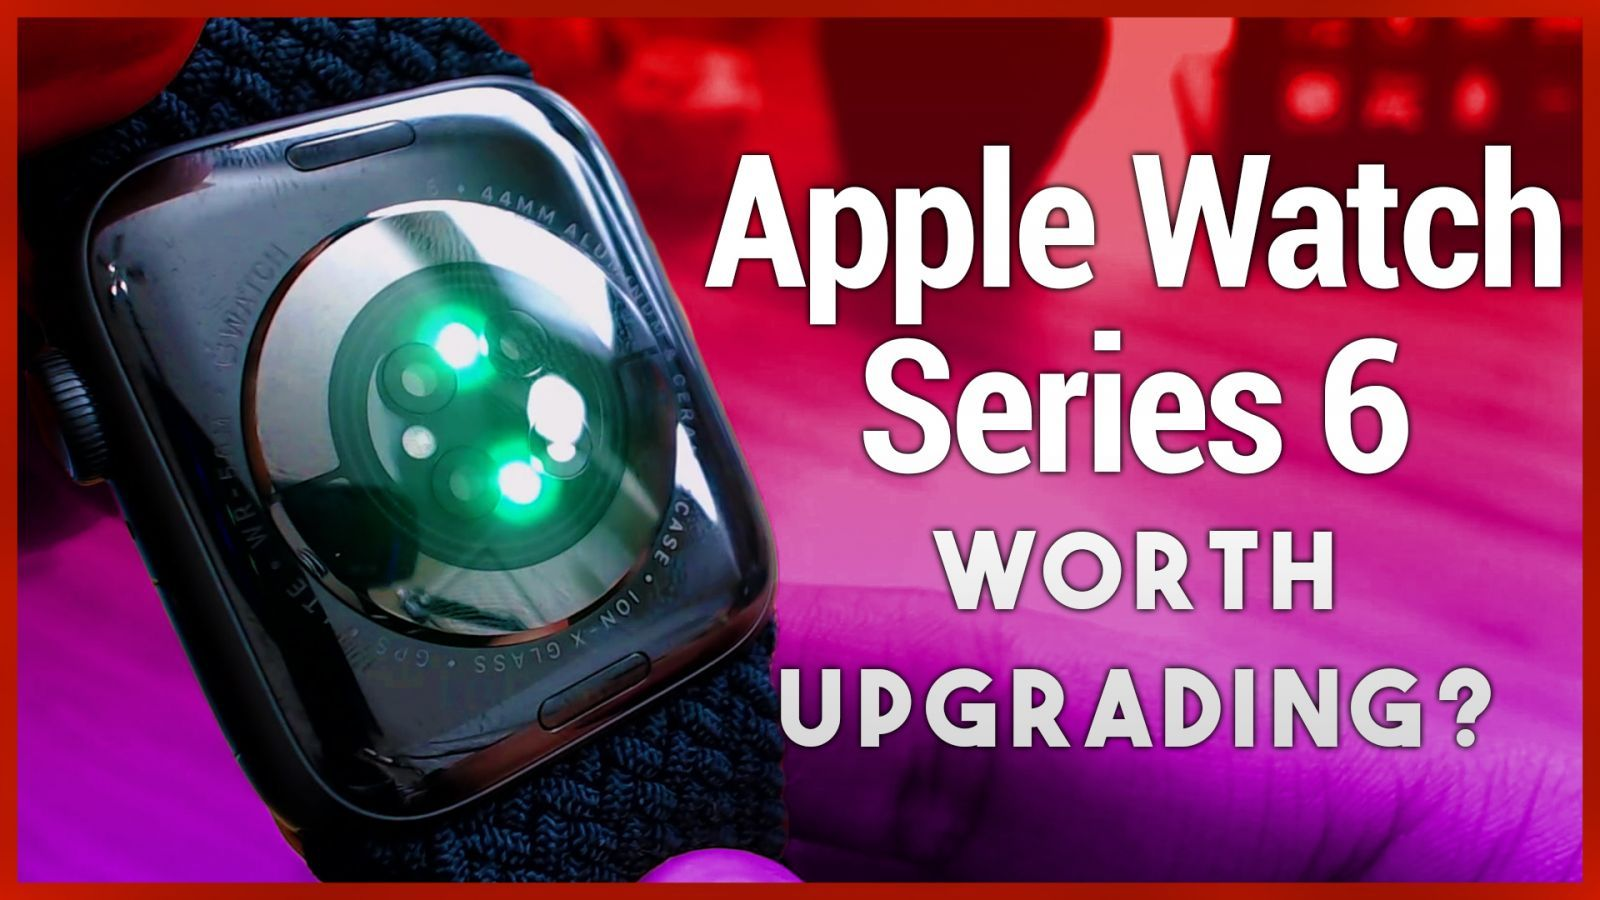 Apple Watch Series 6 Review - Blood Oxygen Sensor Worth Upgrading?